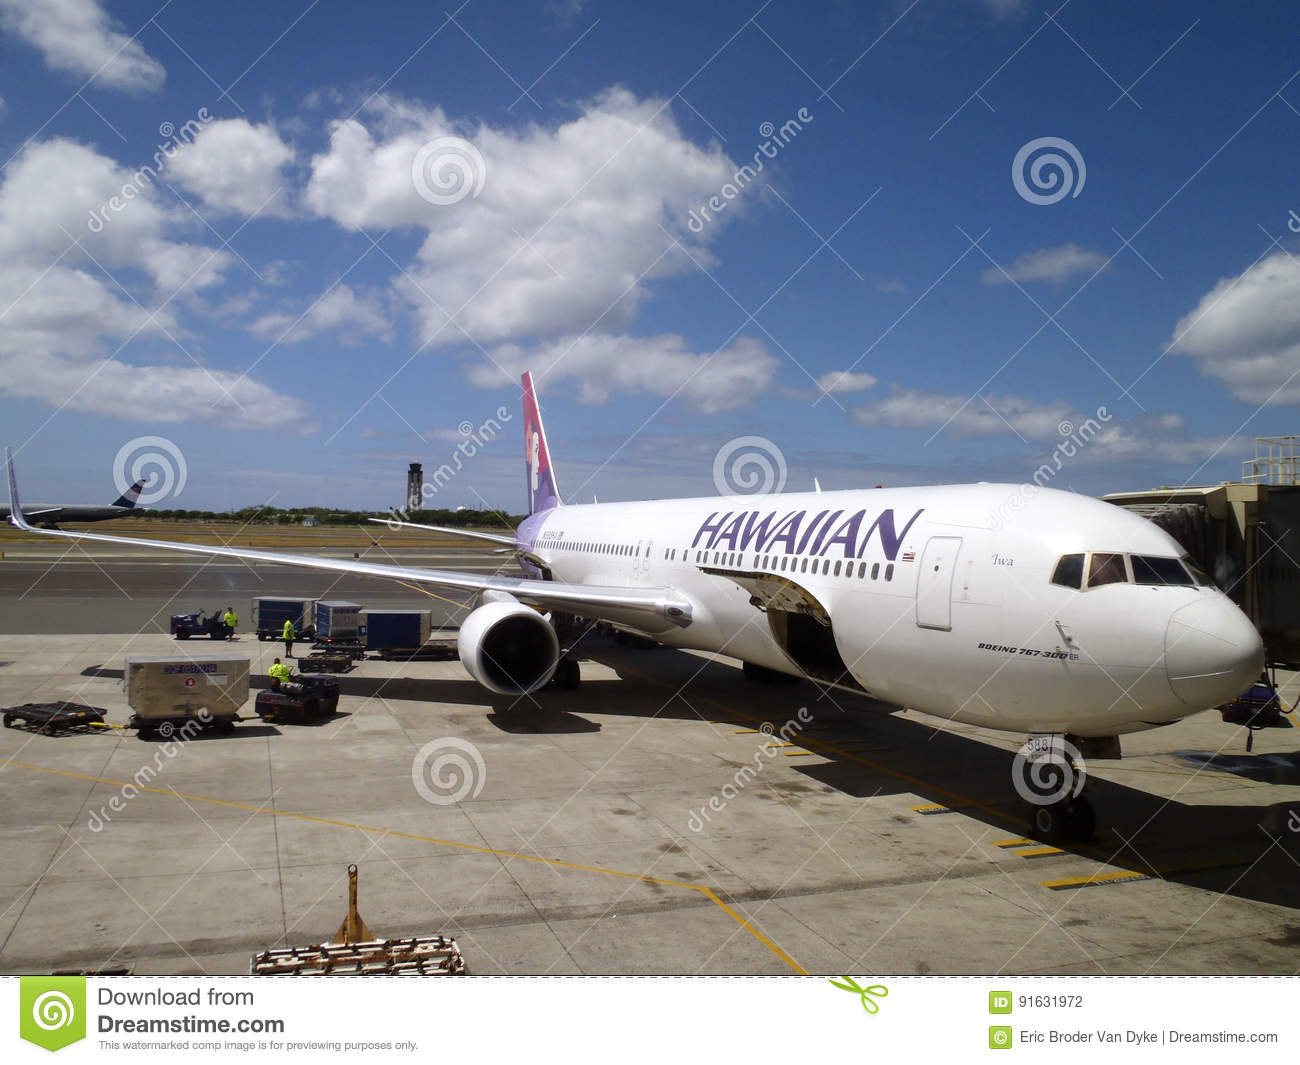 Hawaiian Airlines airplanes gets ready for boarding